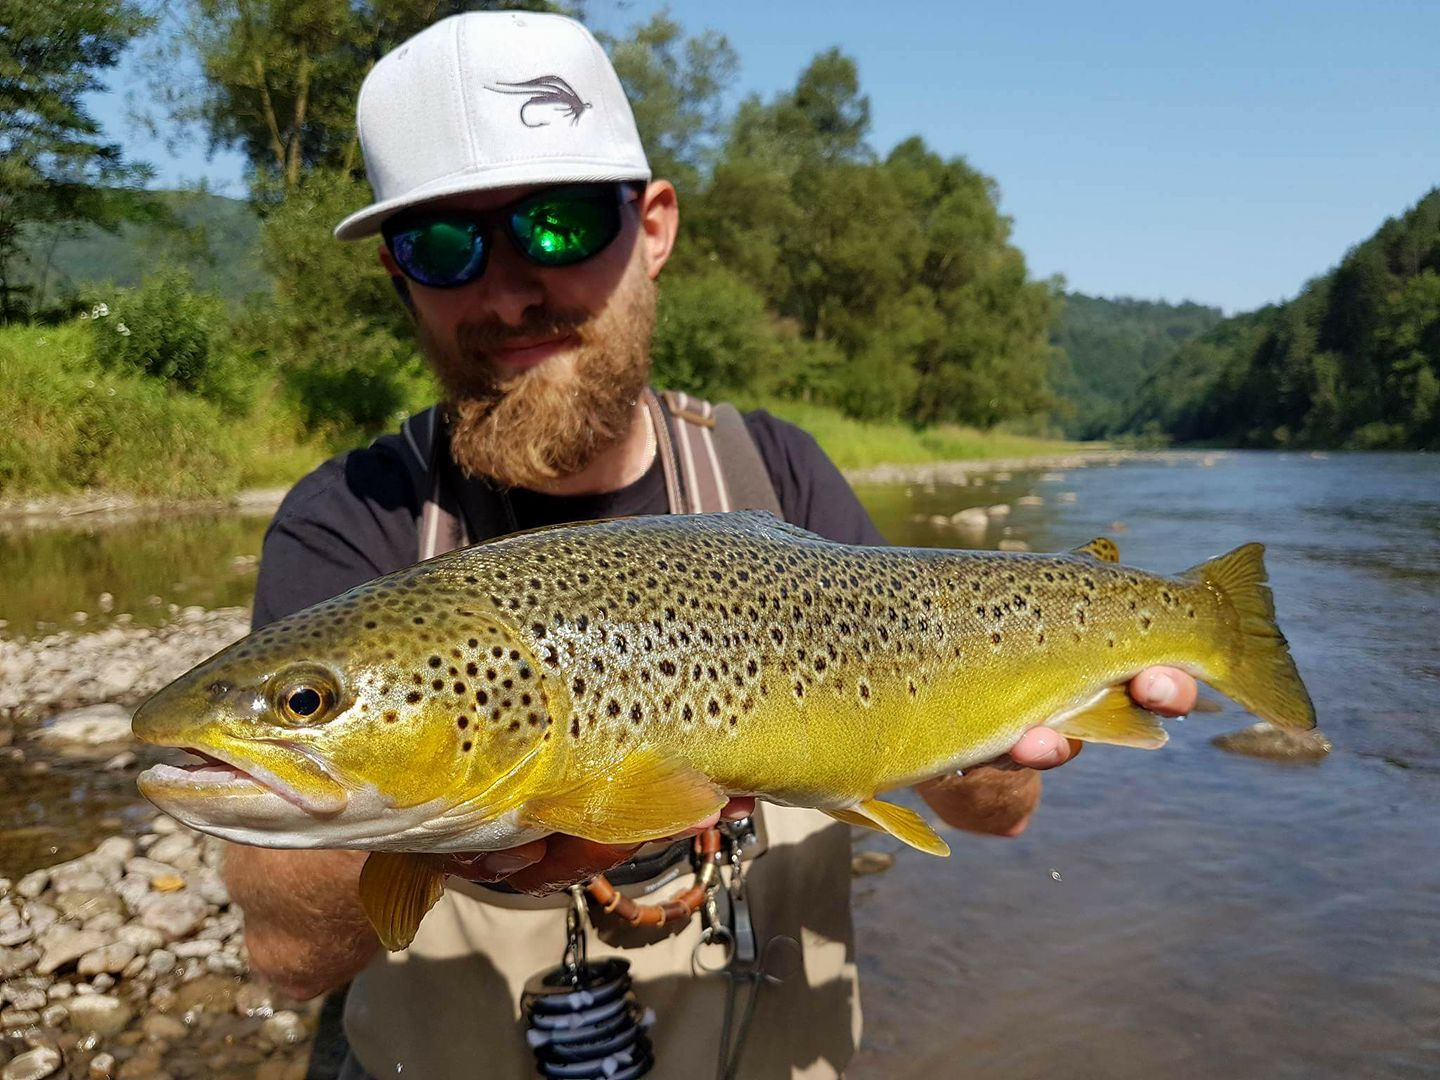 Fly fishing guide with nice trout Dunajec River - Poland